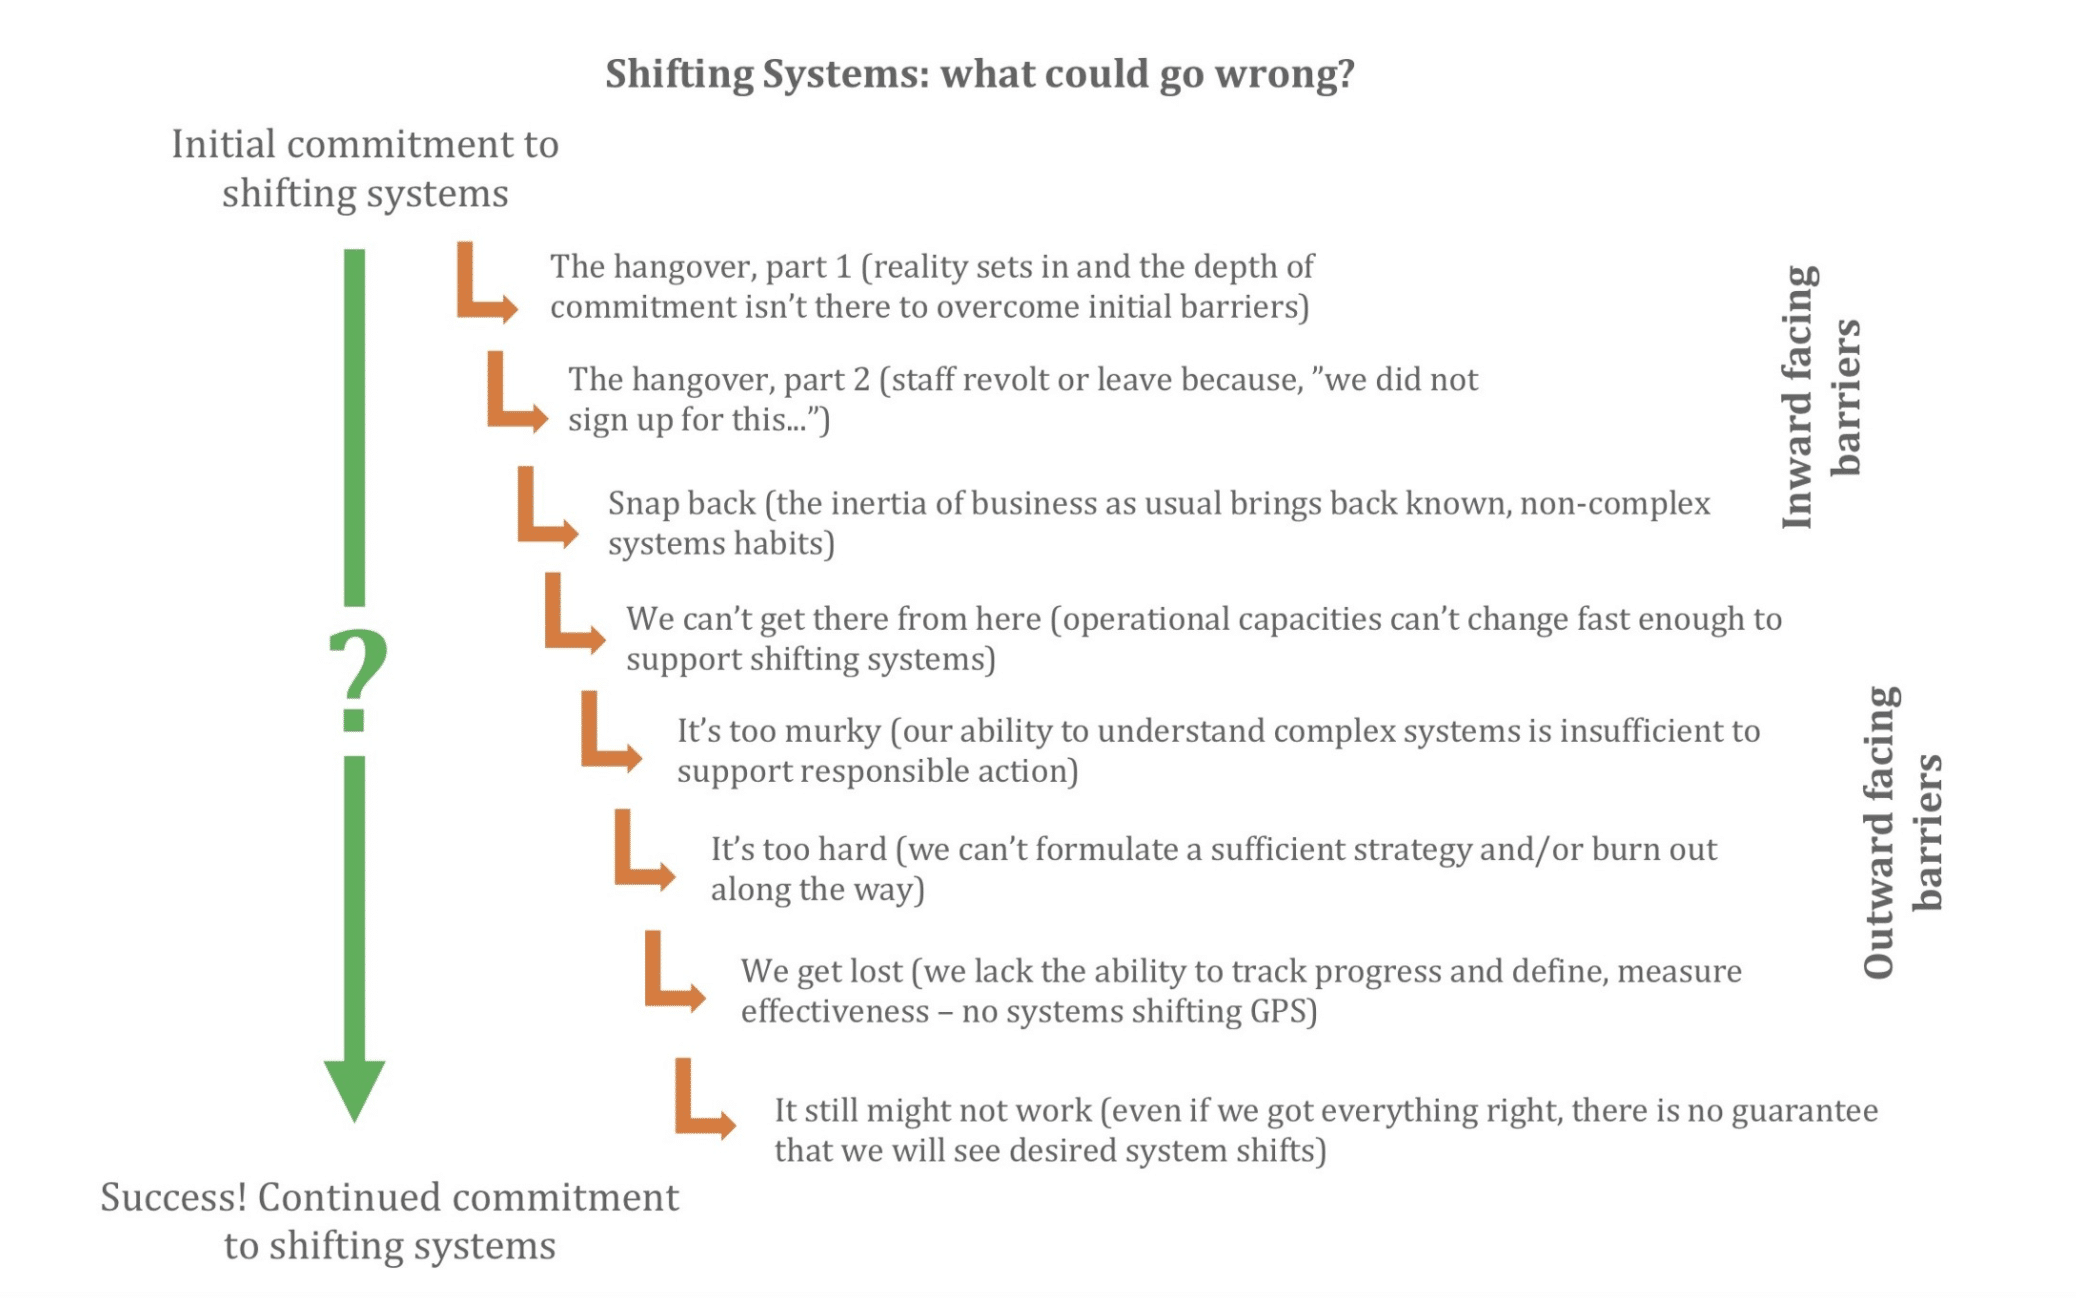 Shifting systems - what could go wrong